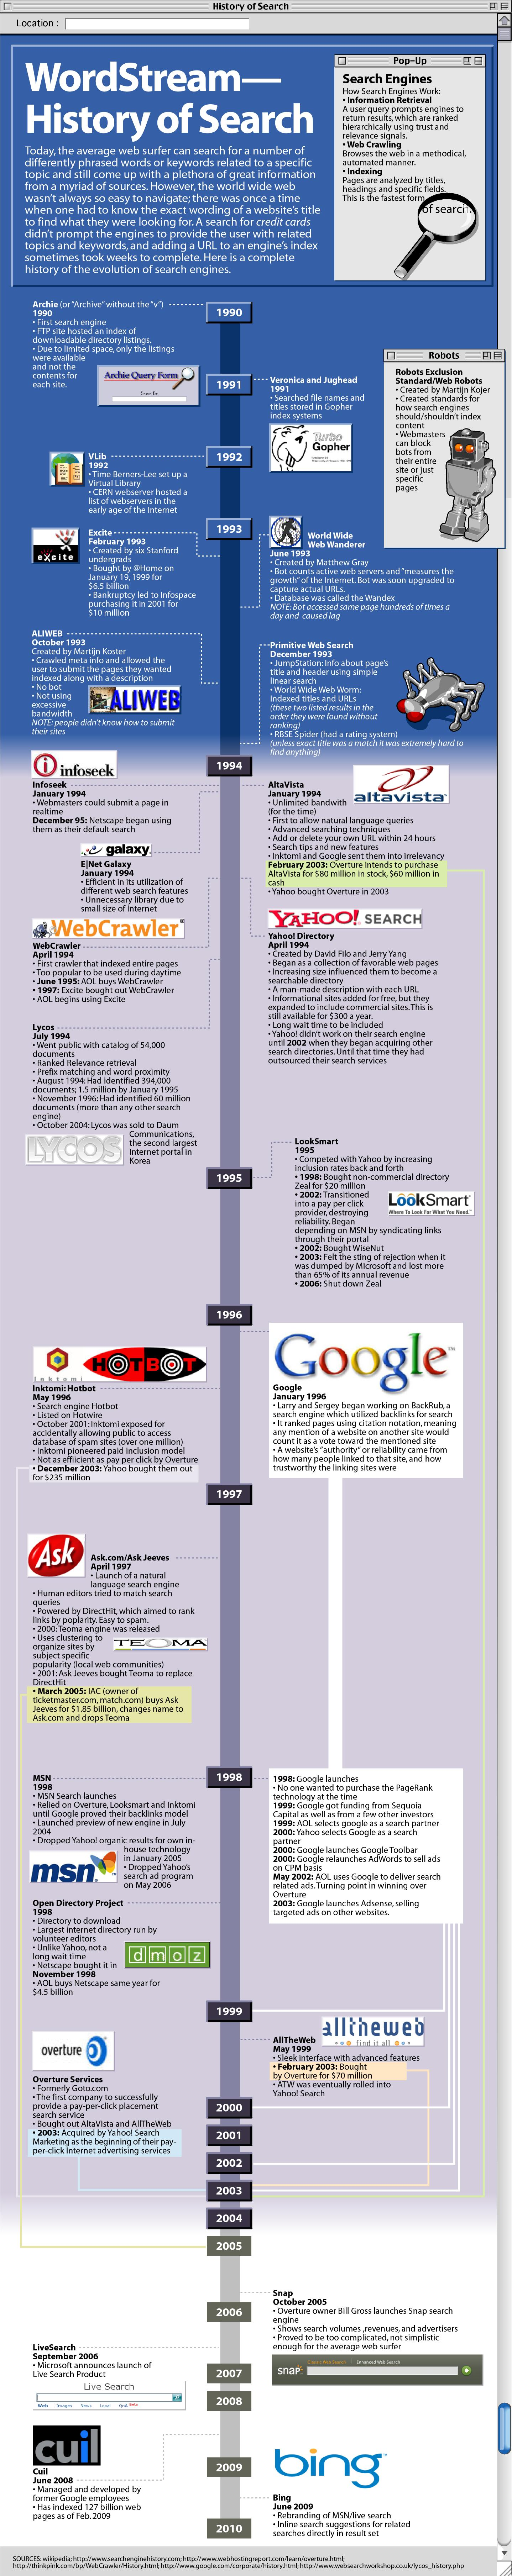 history-internet-search-engines